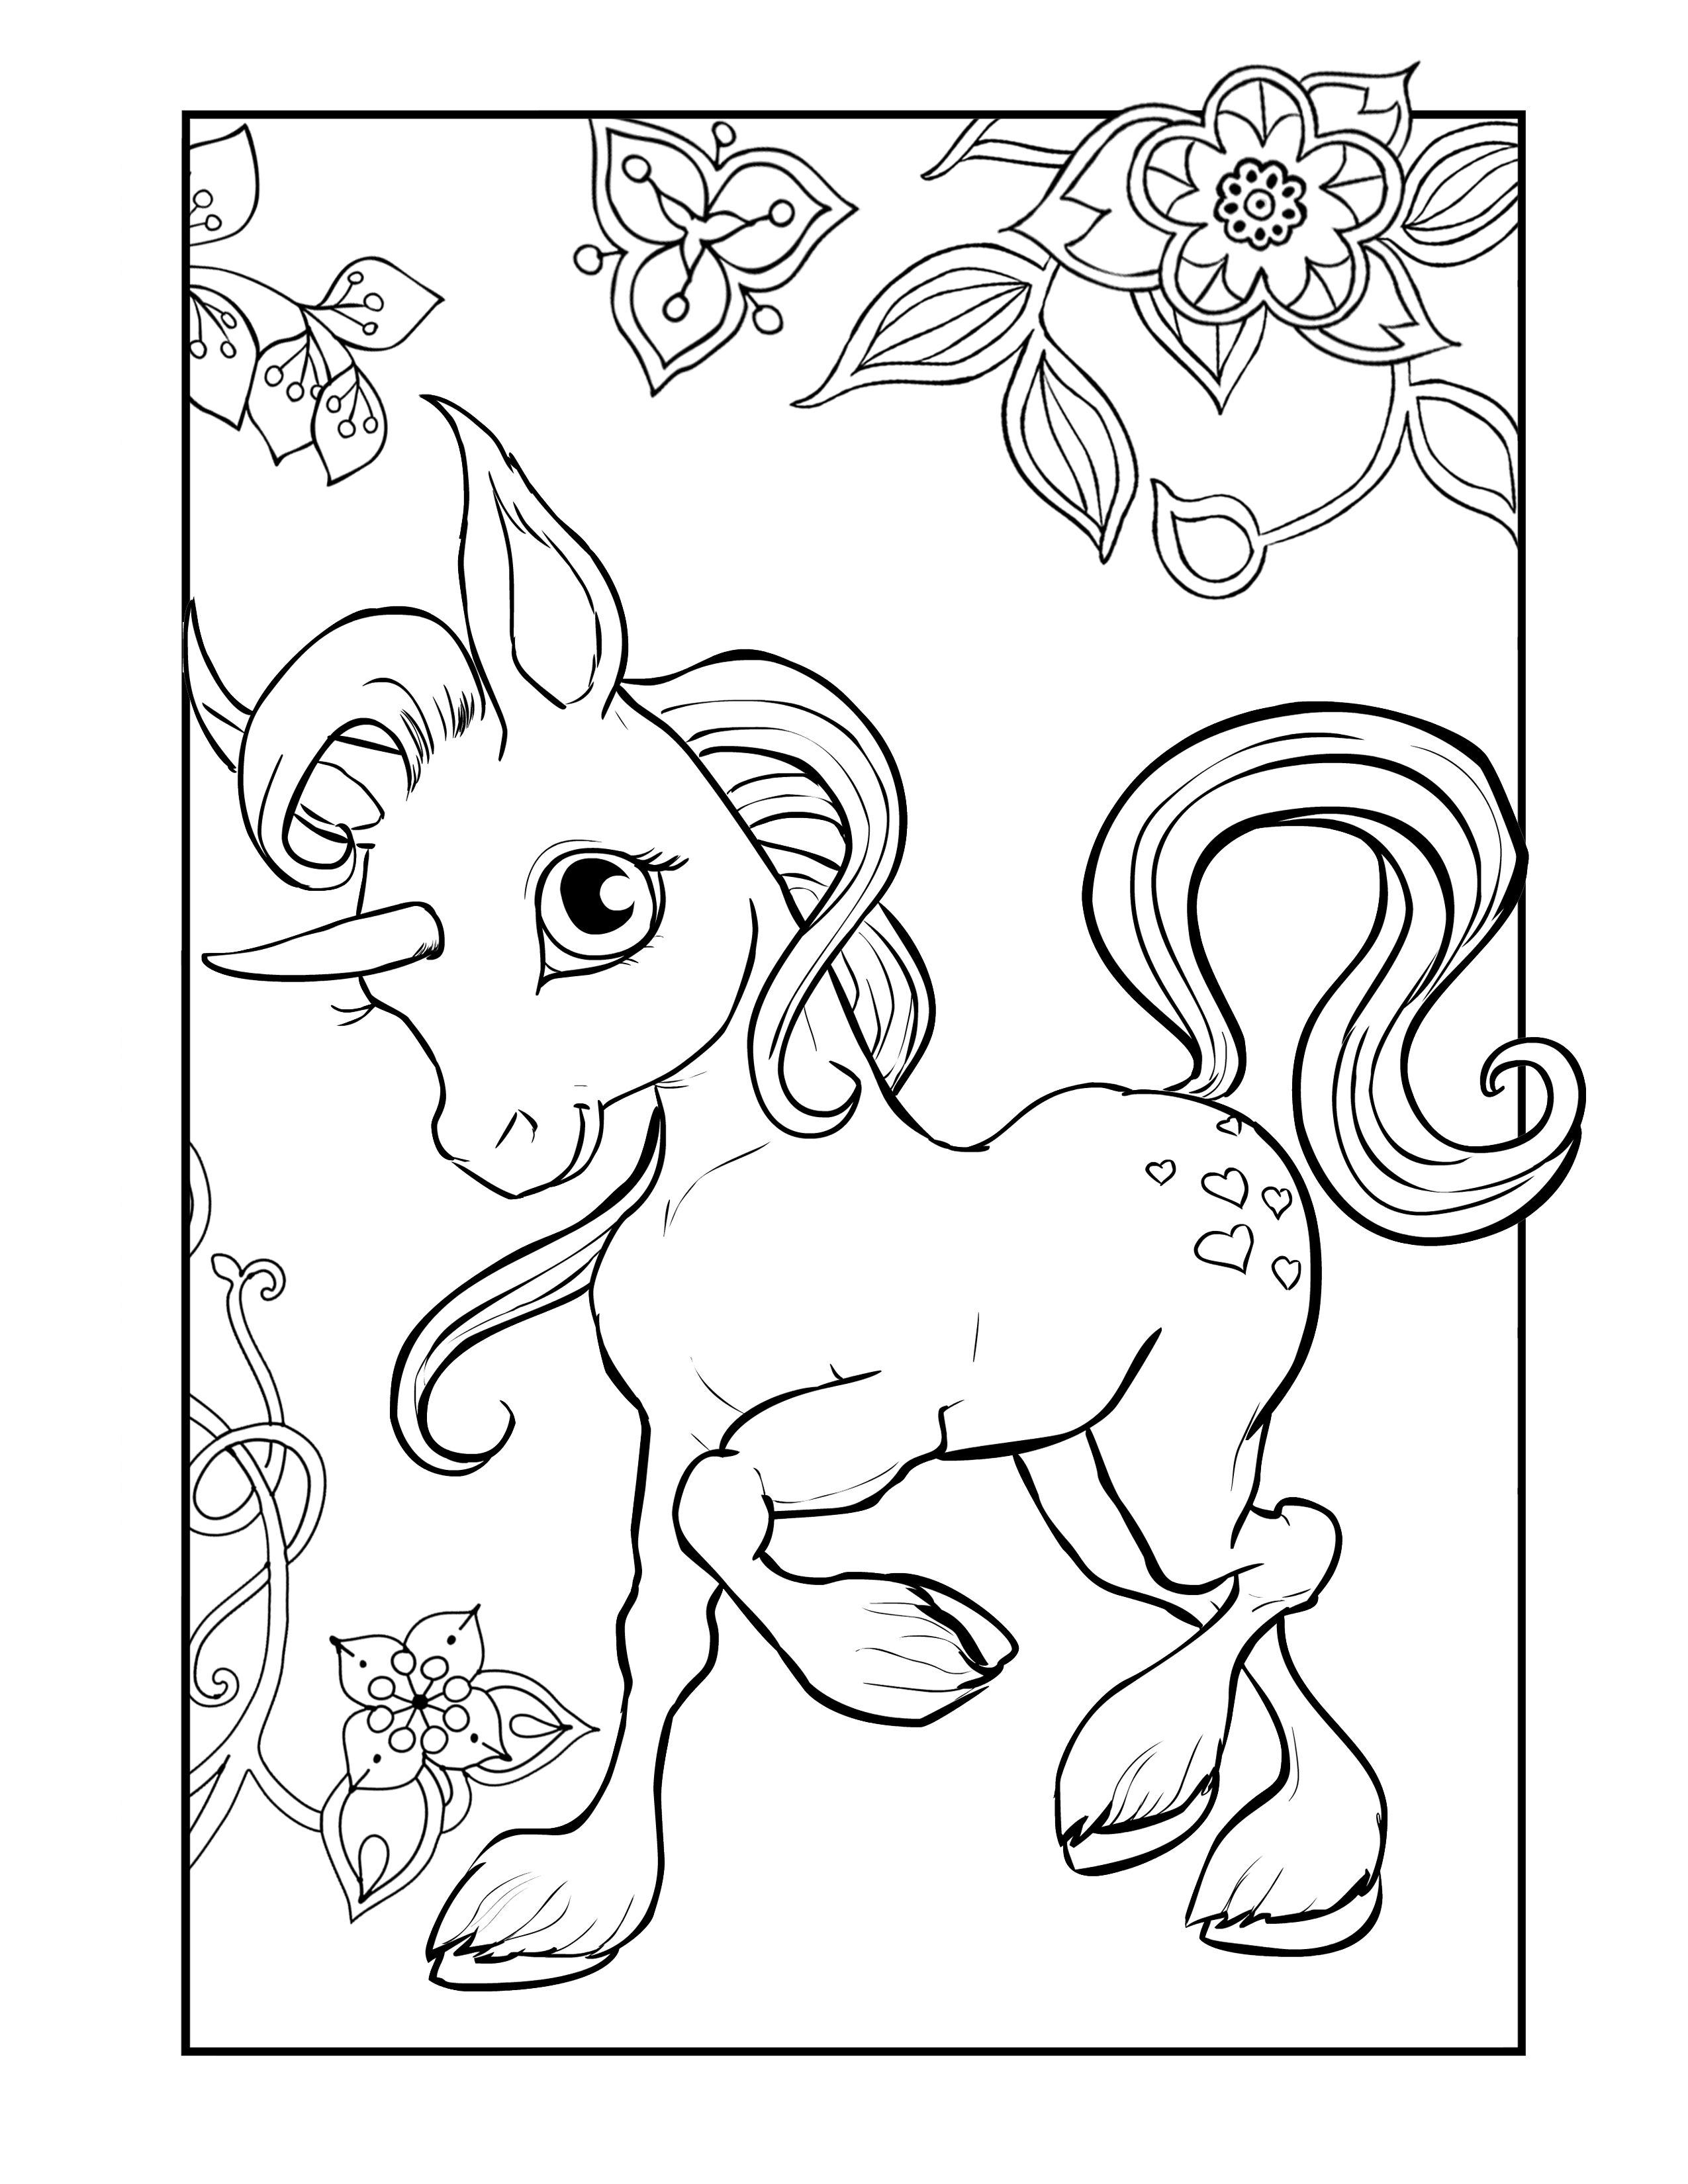 coloring books for girls pin on horse lovers coloring books for coloring girls books